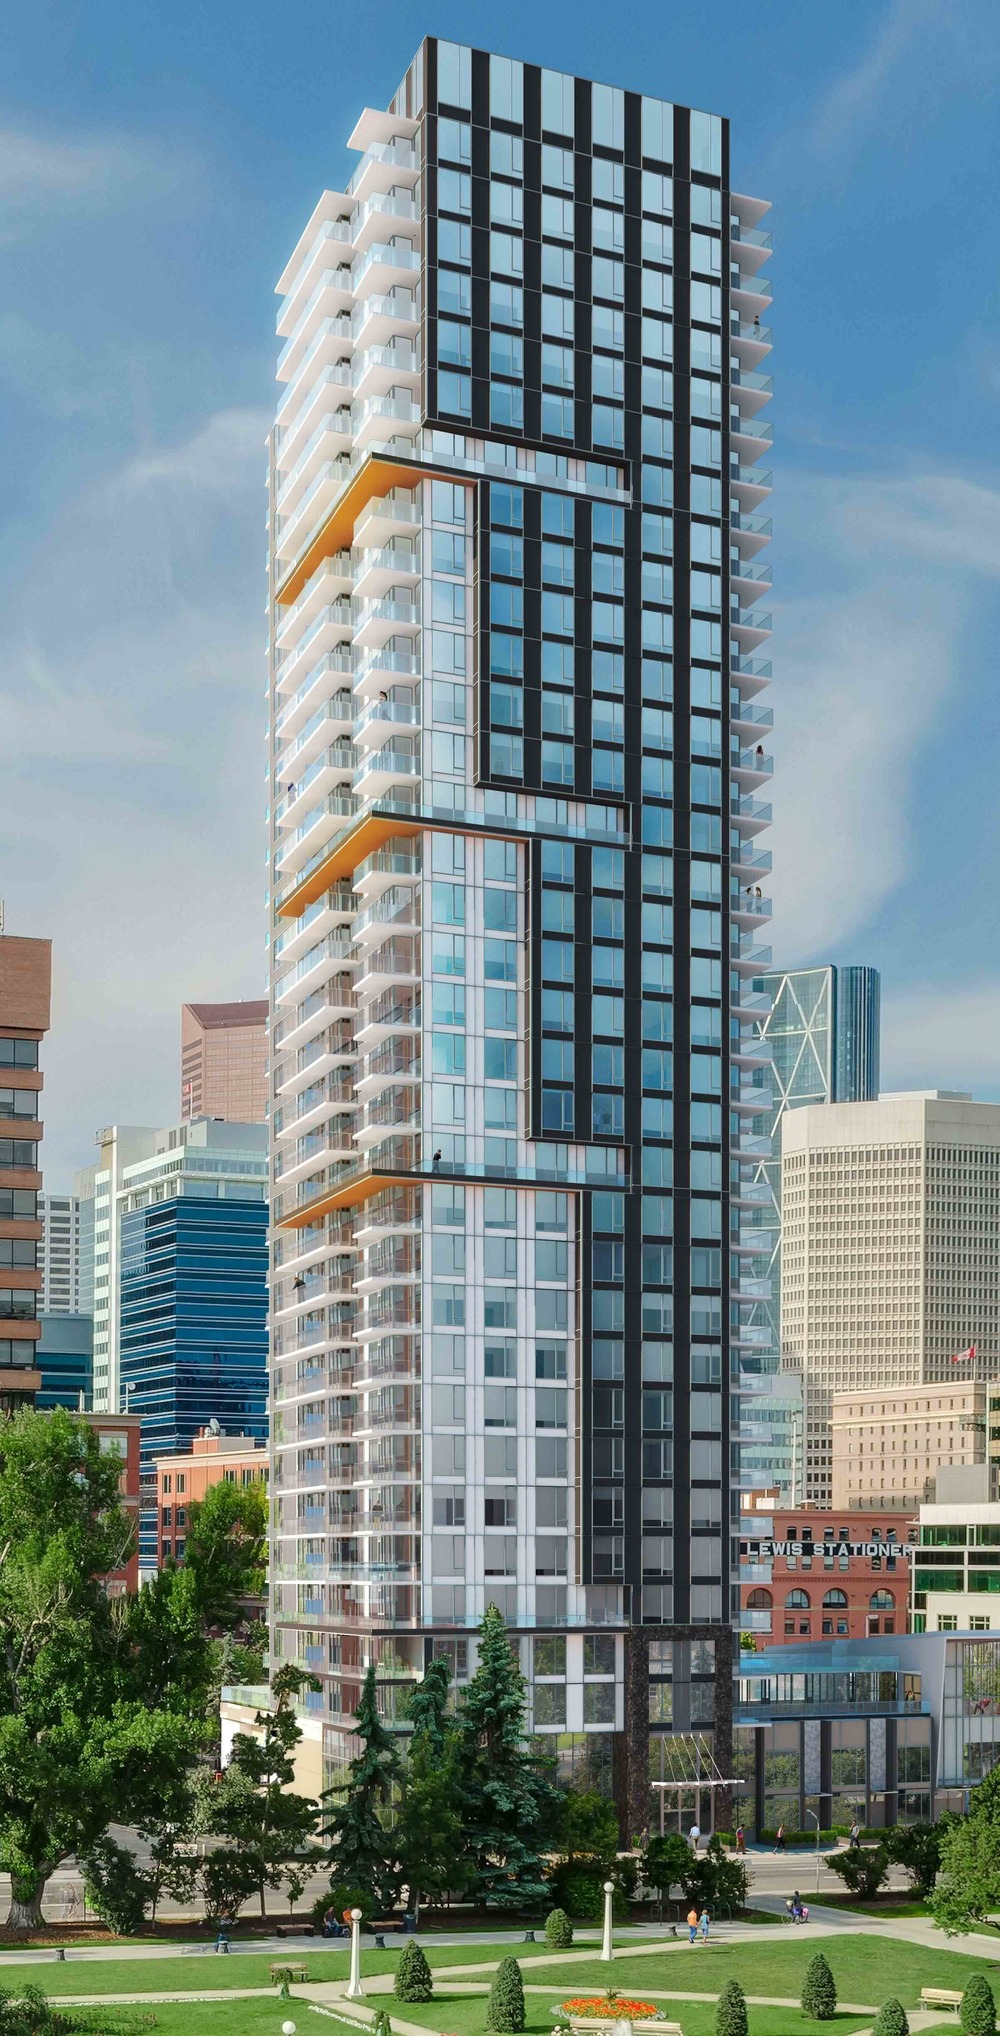 Park Point will become the signature contemporary building in Calgary's Beltline community. (image courtesy of Qualex Landmark)